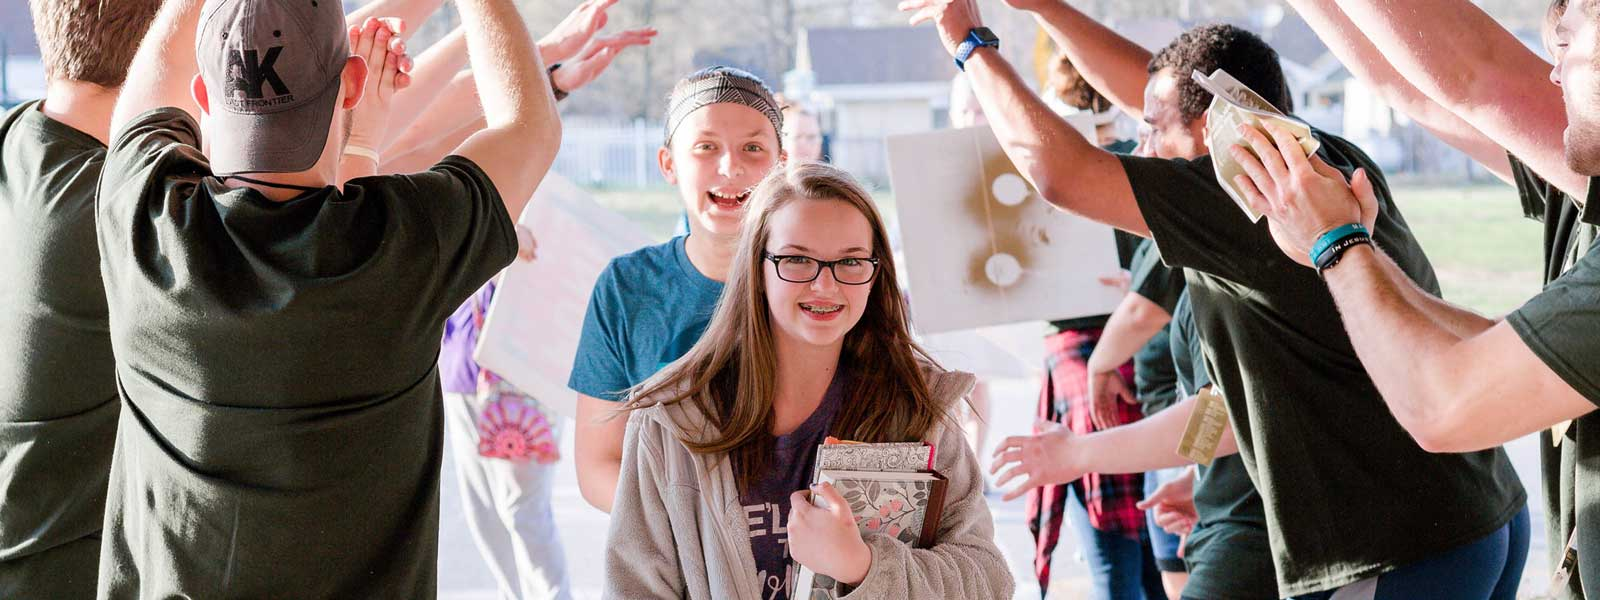 two young girls smile as they are welcomed into church camp by enthusiastic youth leaders